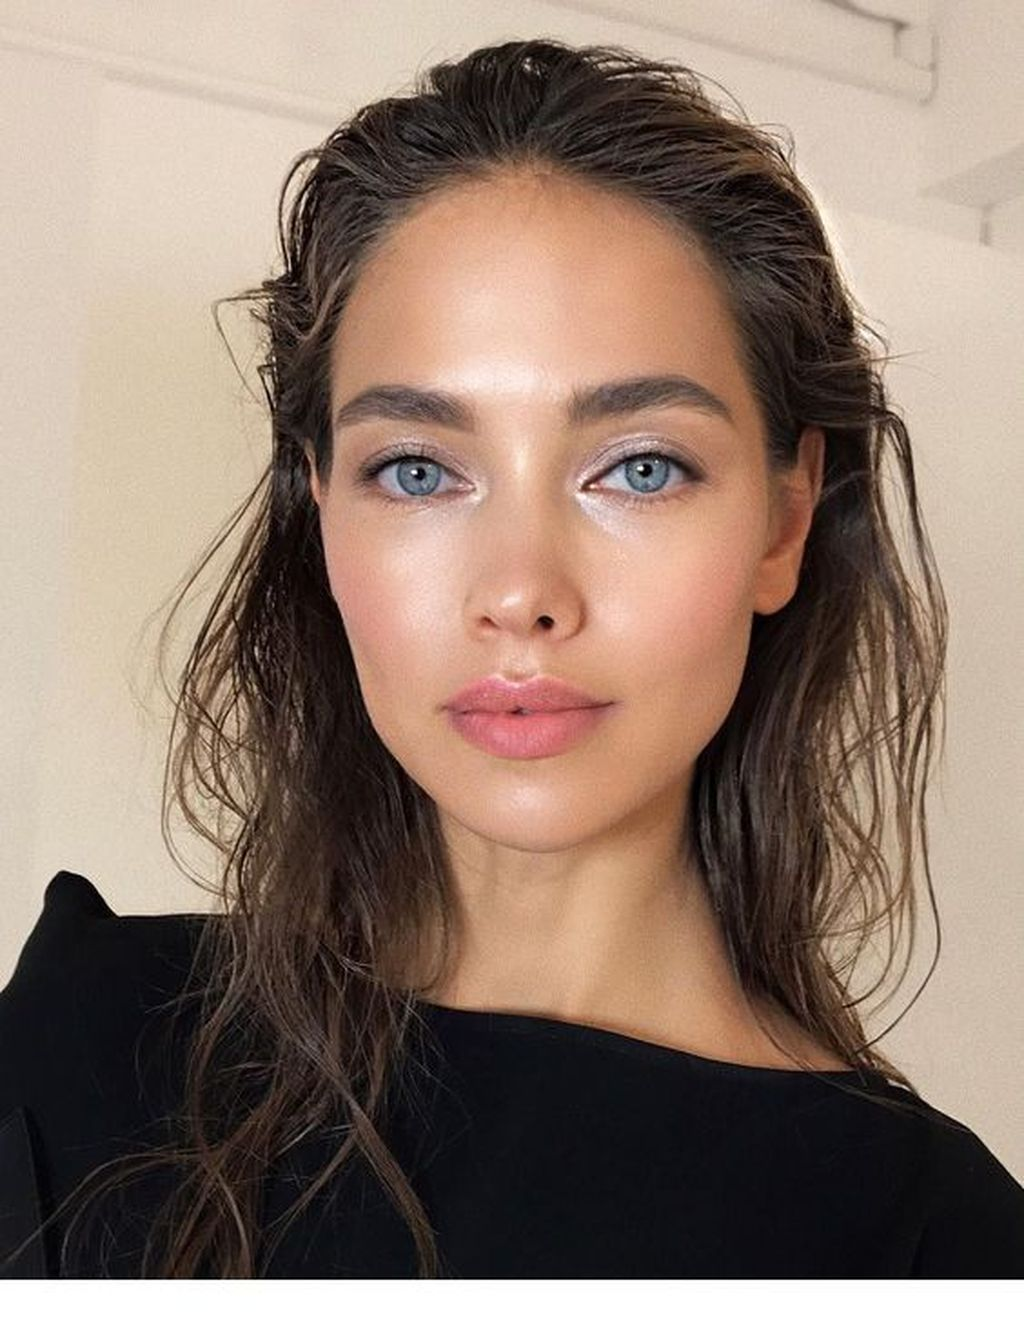 20+ Chic Natural Makeup Ideas For Any Season To Try